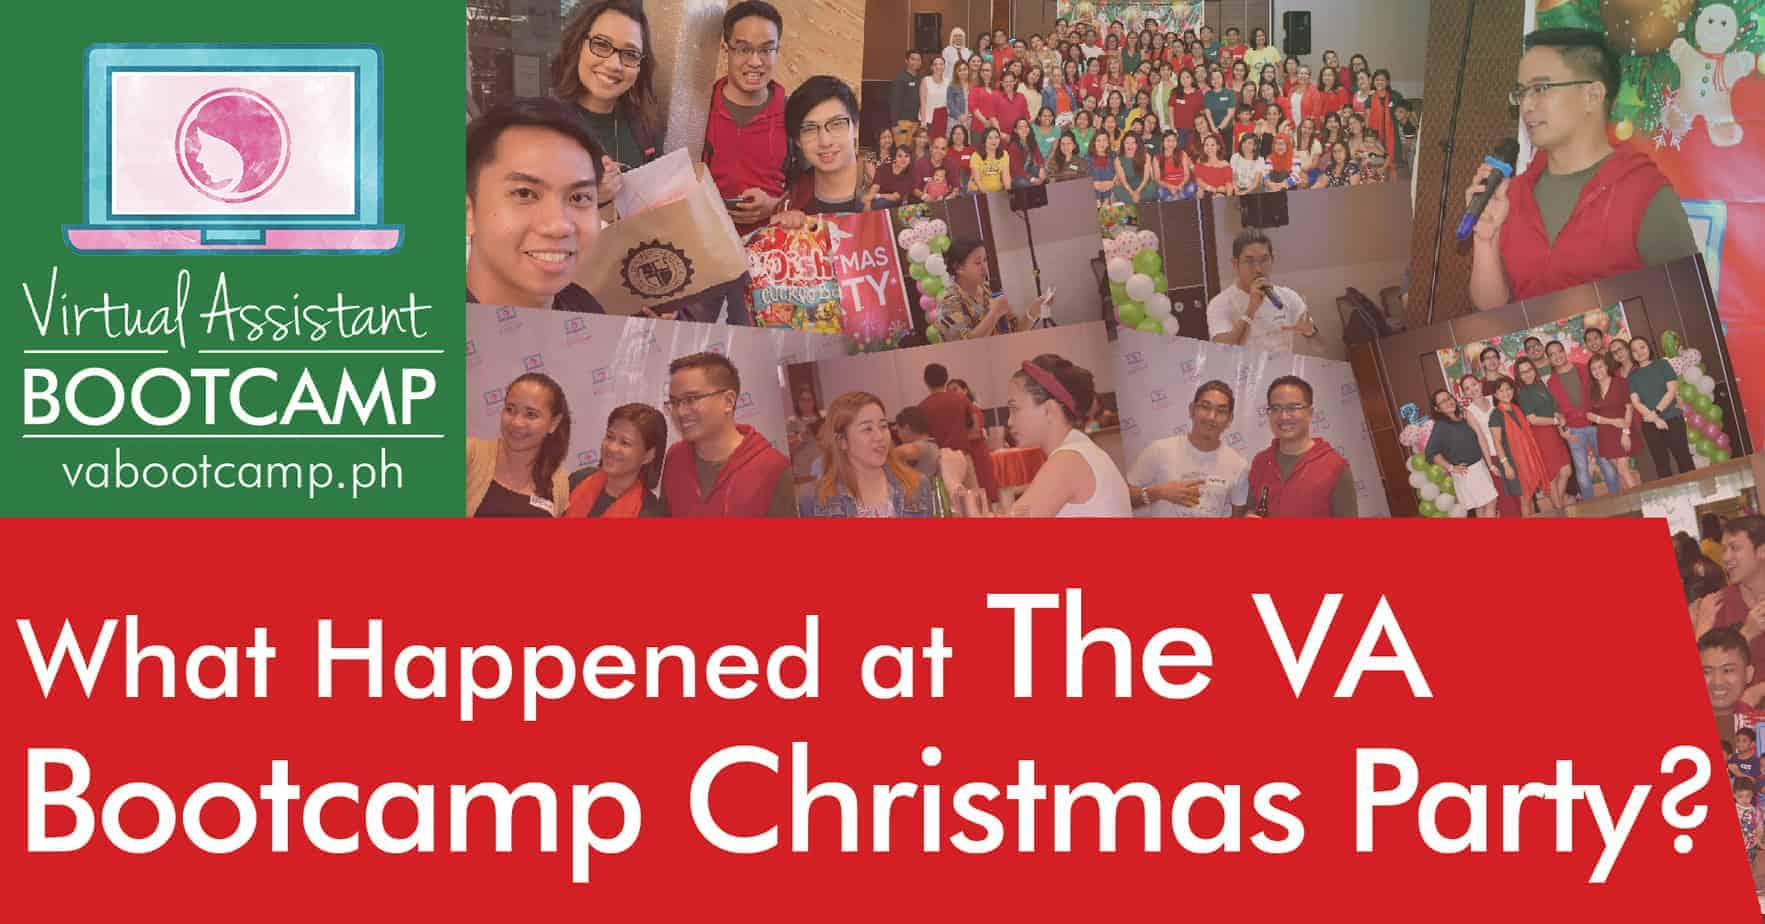 What Happened at The VA Bootcamp Christmas Party 2018?